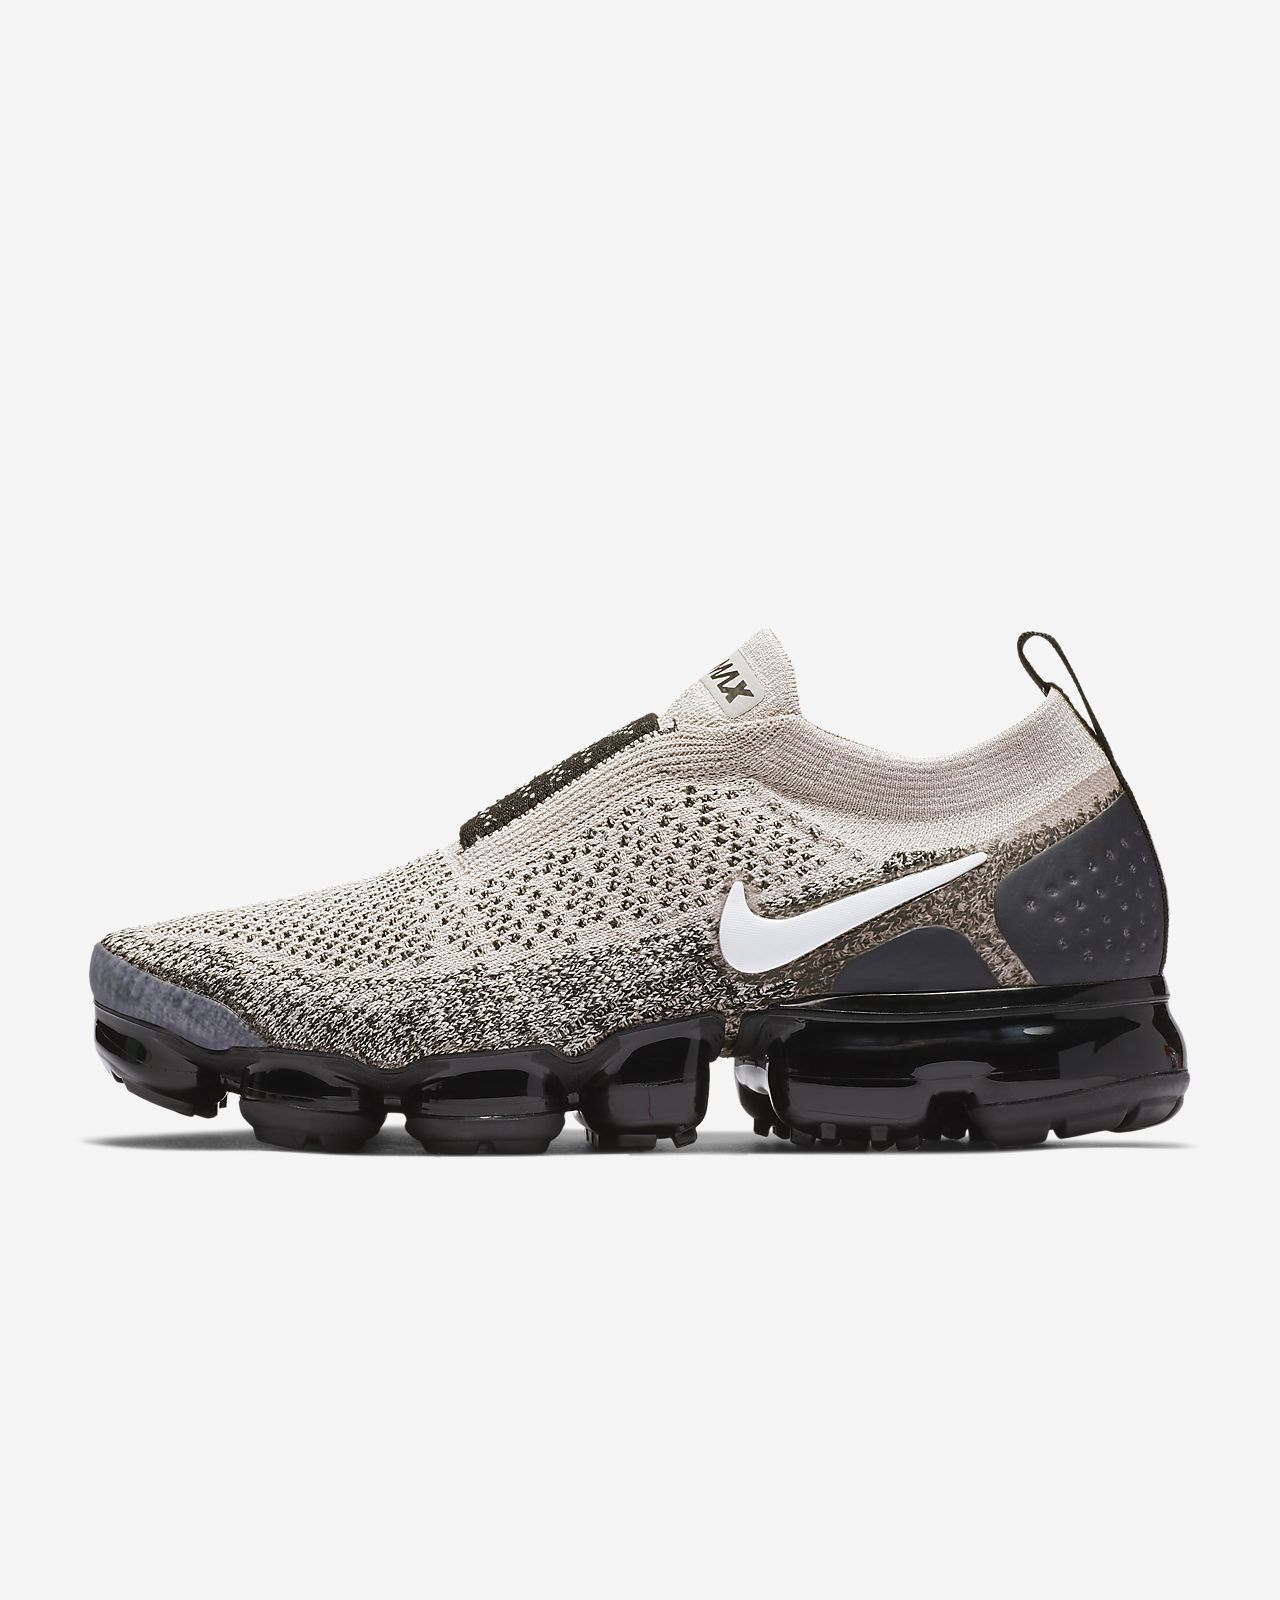 Chaussure Nike Air VaporMax Flyknit Moc 2 pour Femme